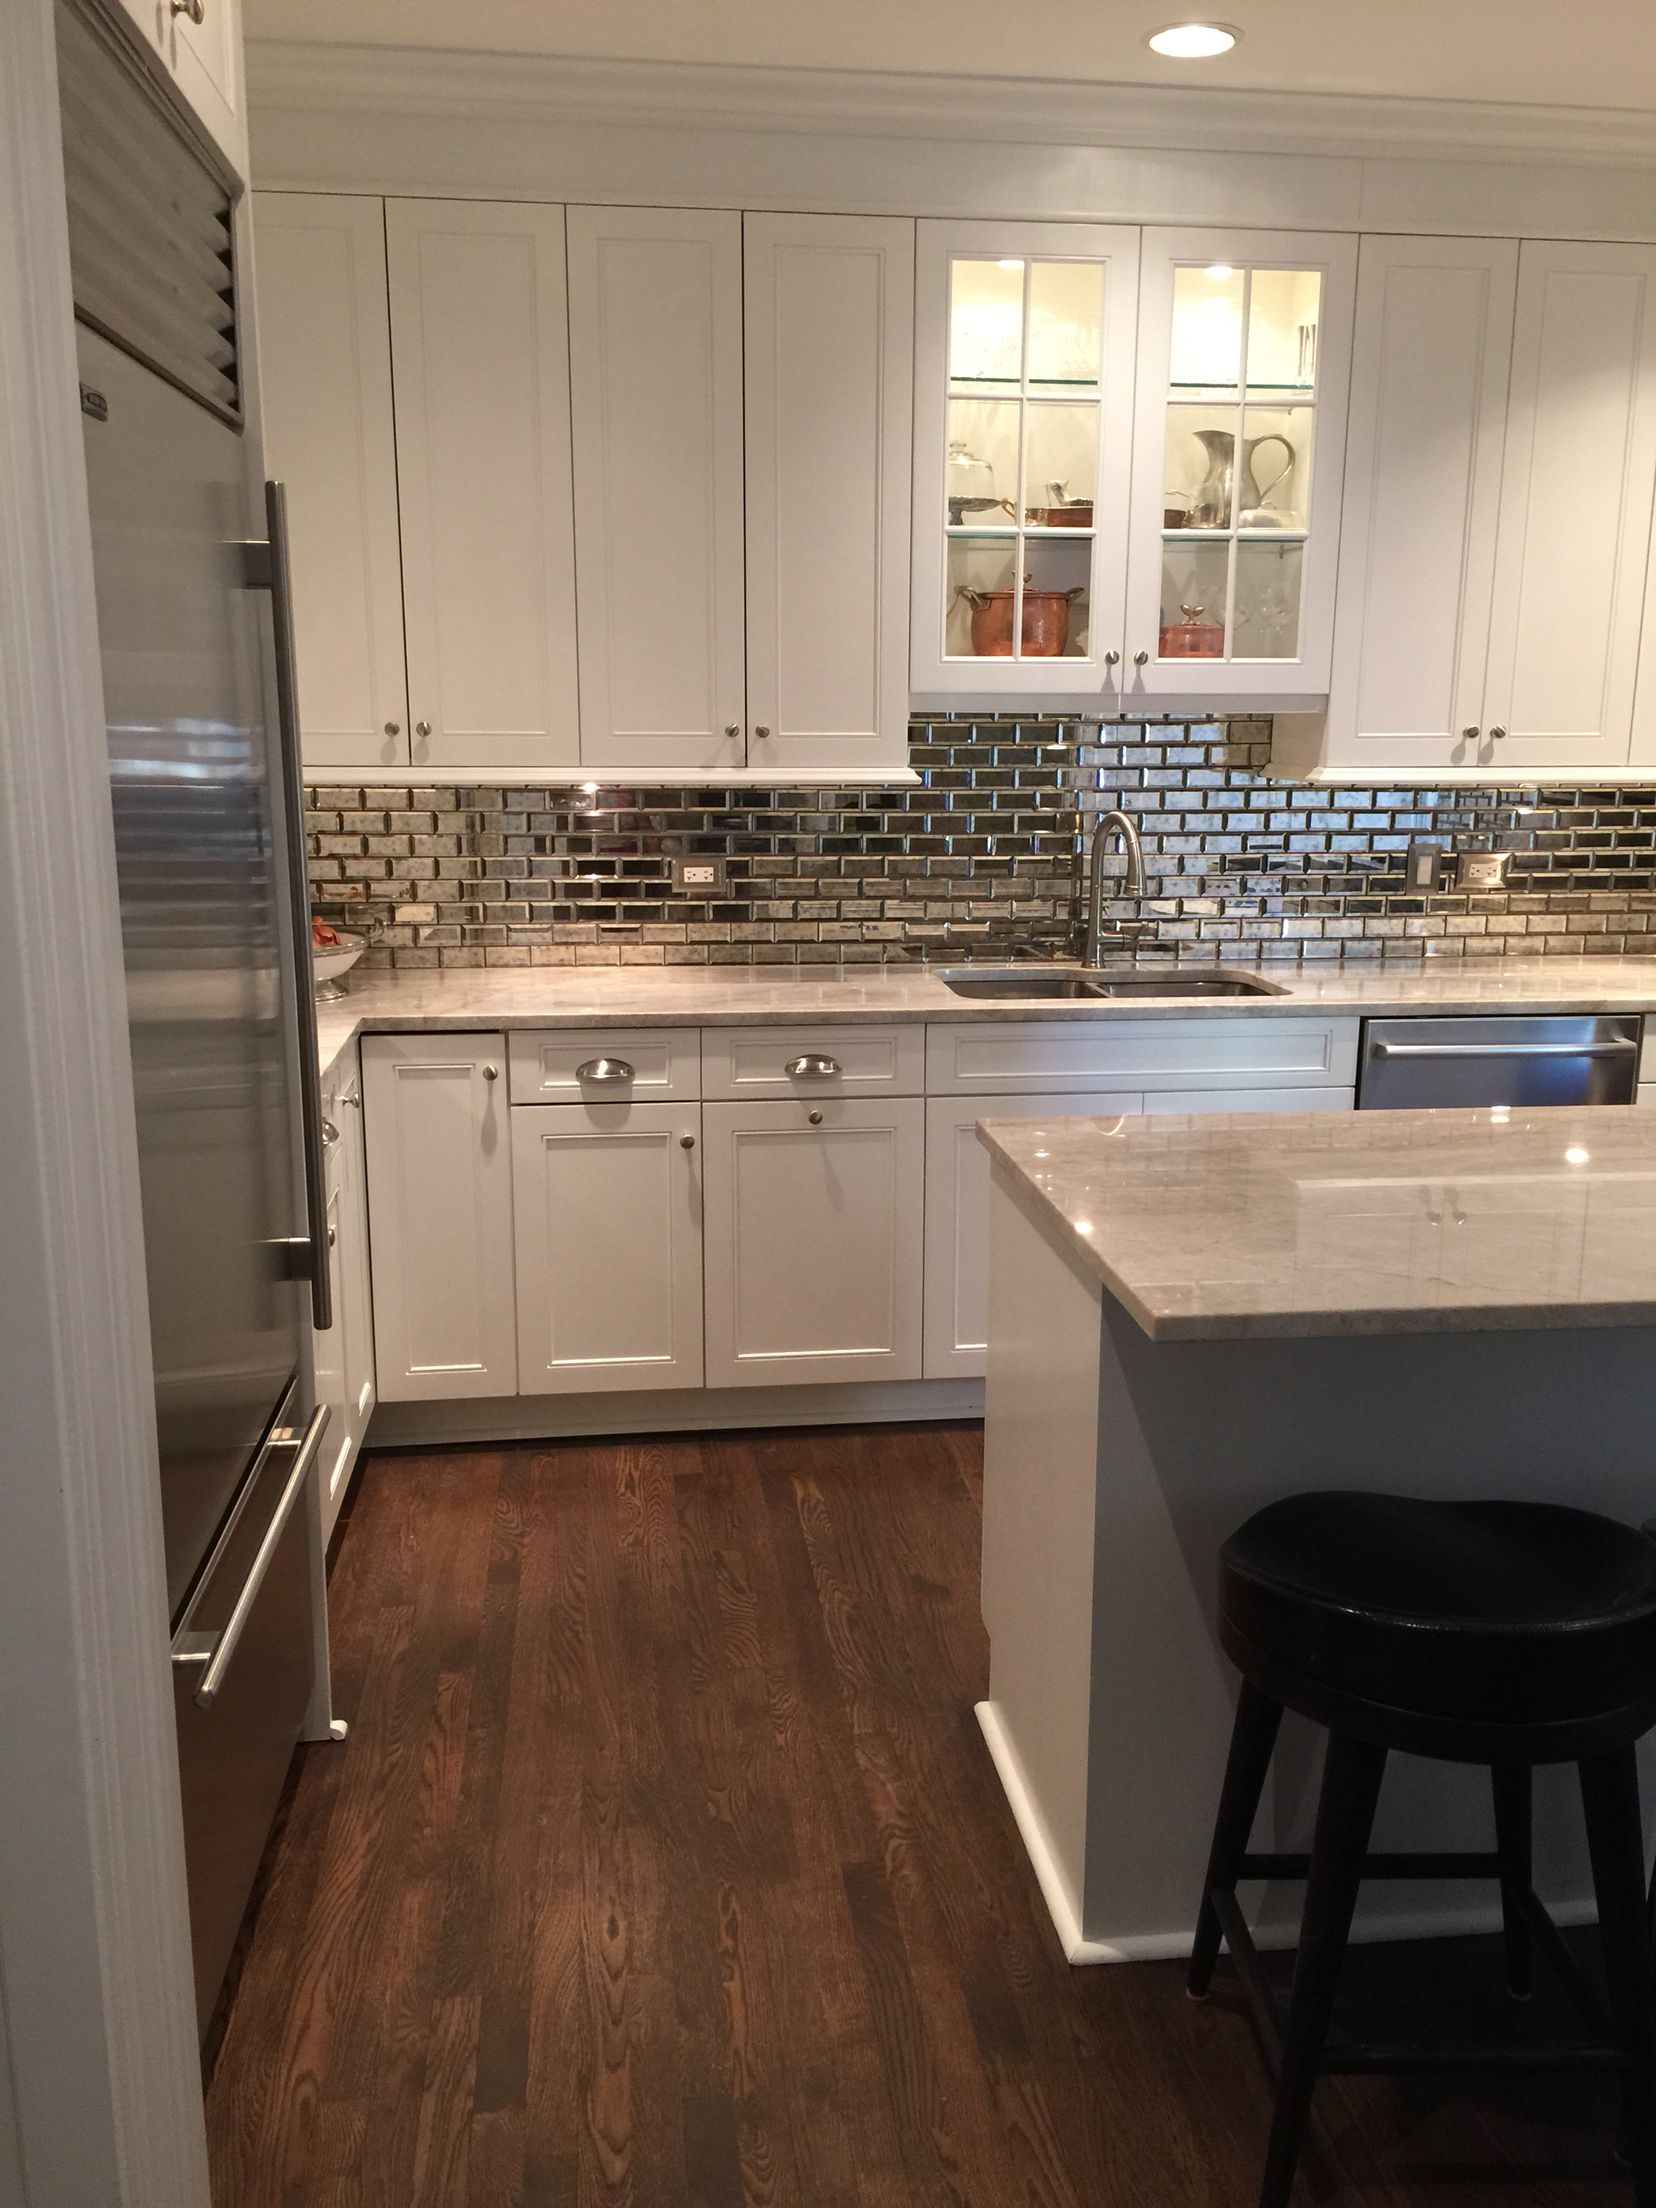 White Kitchen Backslash 2016. Antique Mirror Subway Tiles